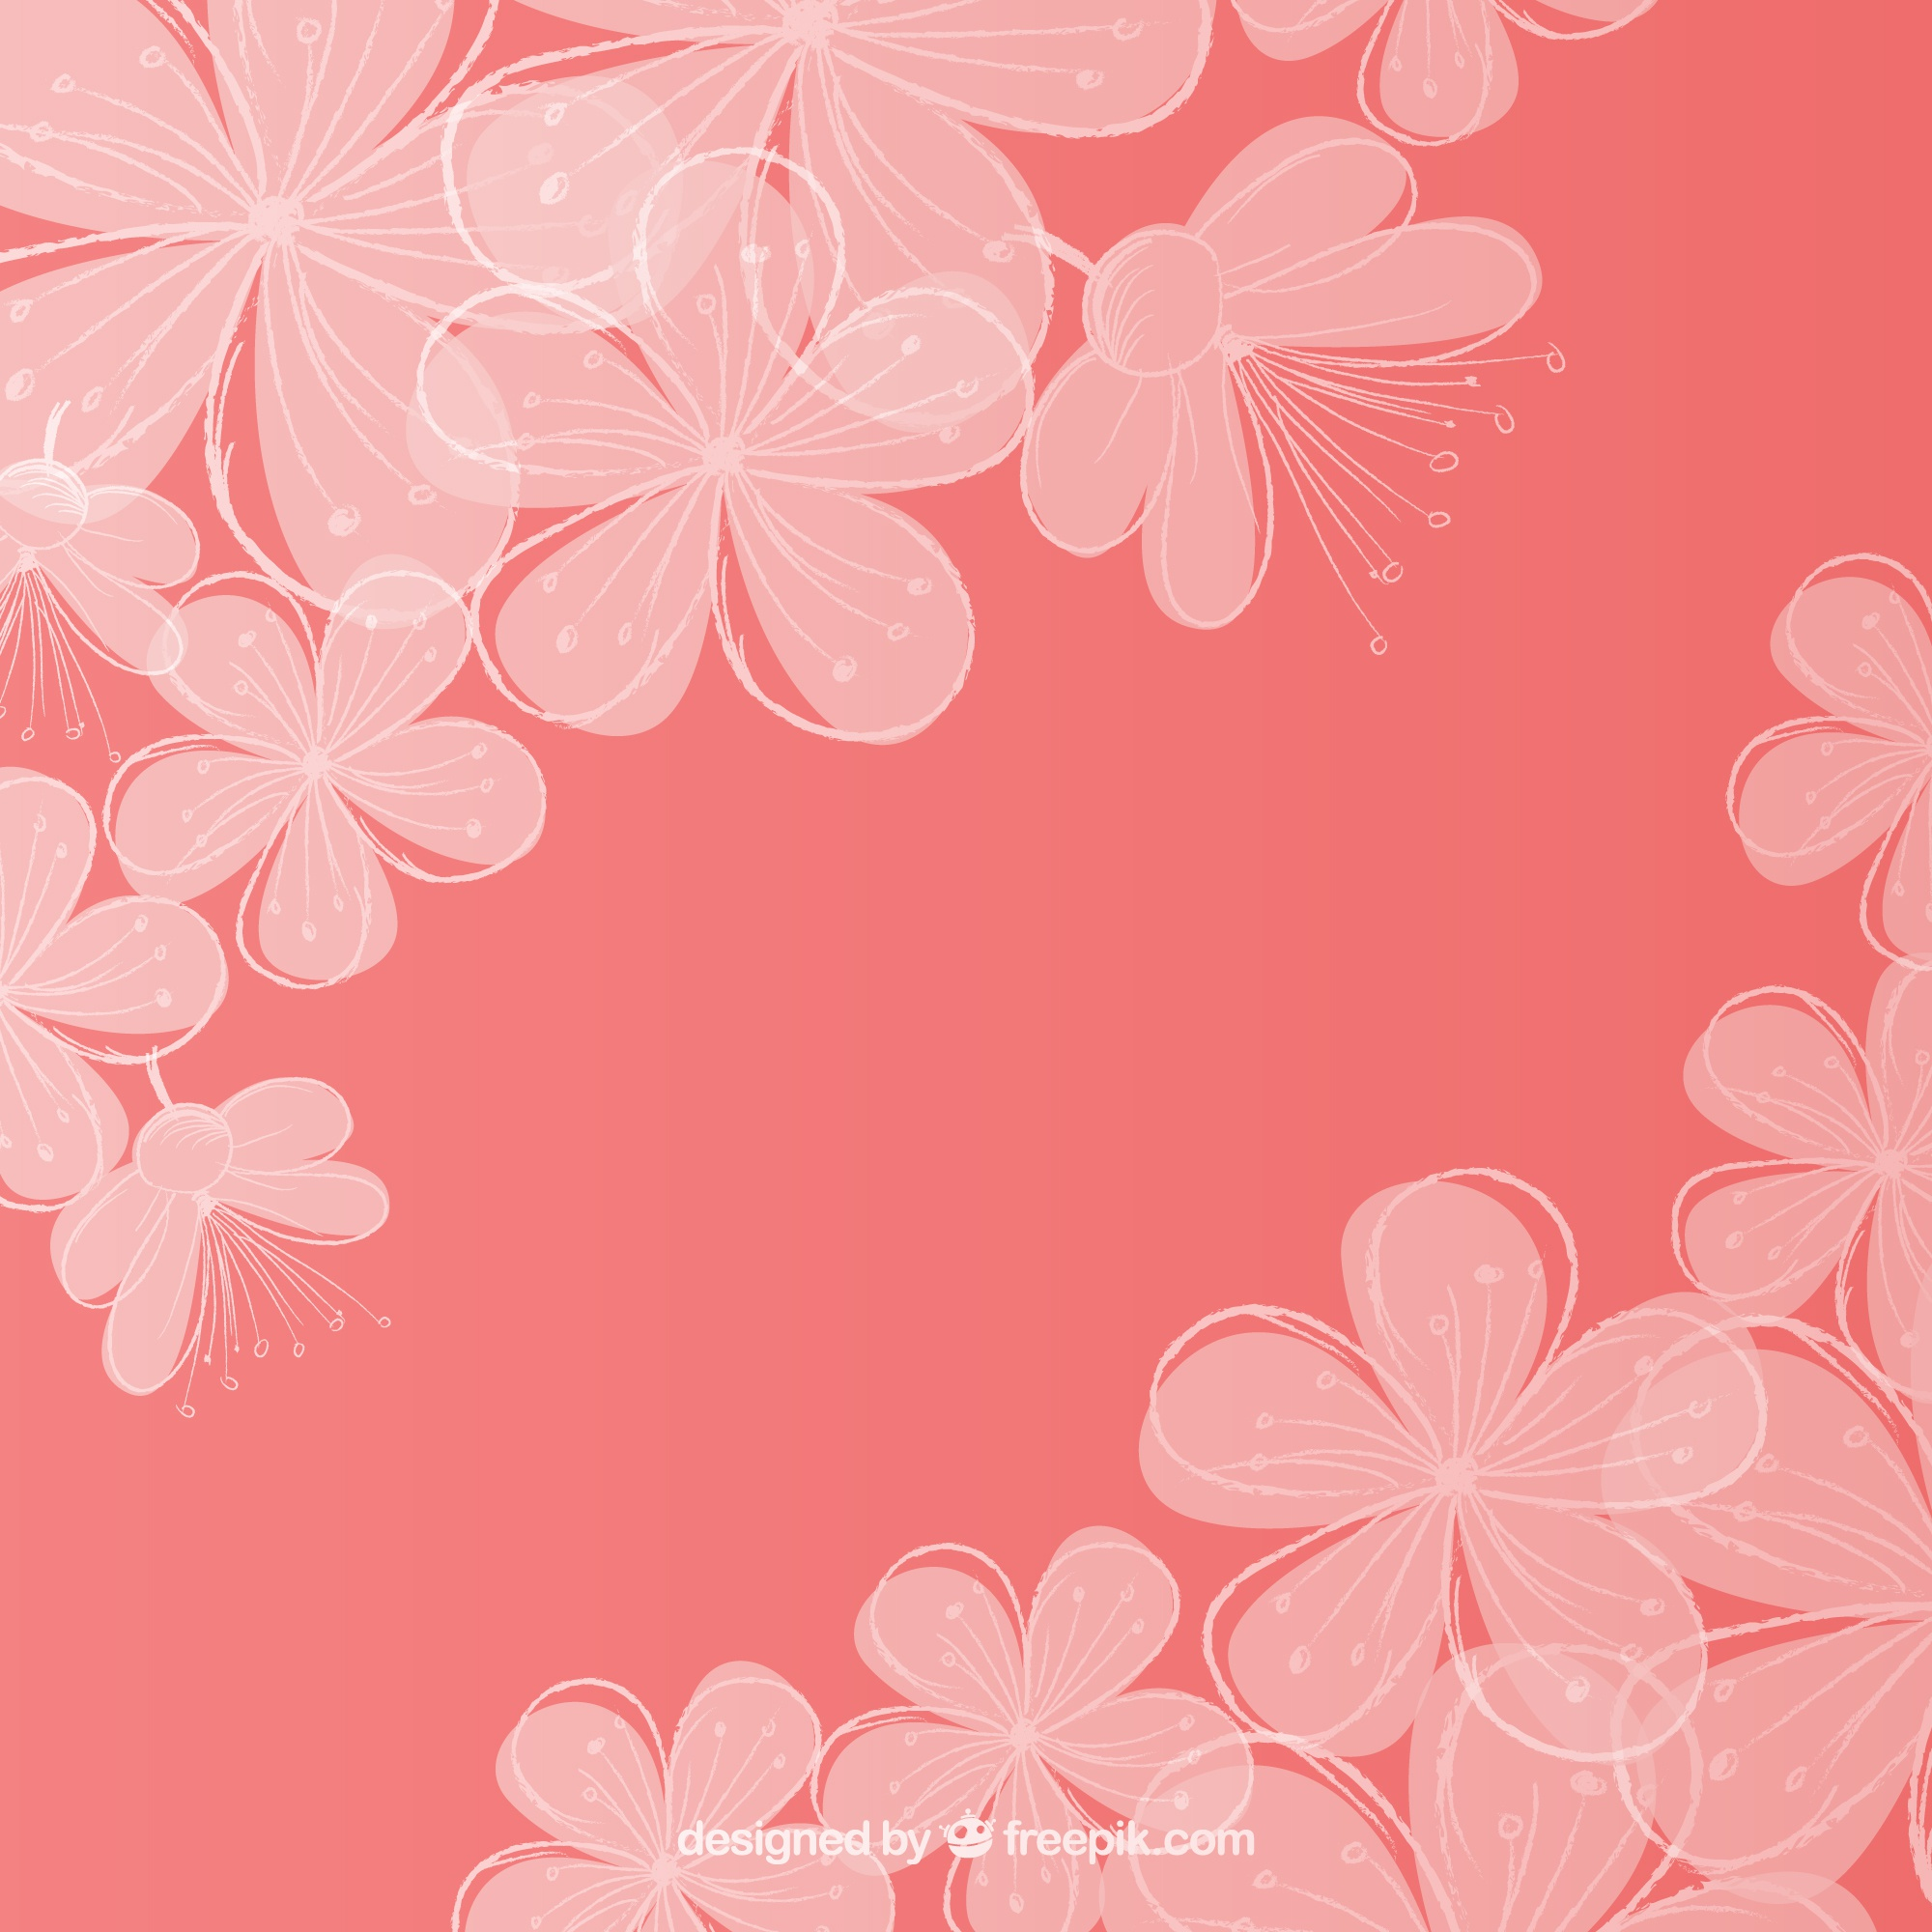 Cherry blossom floral background